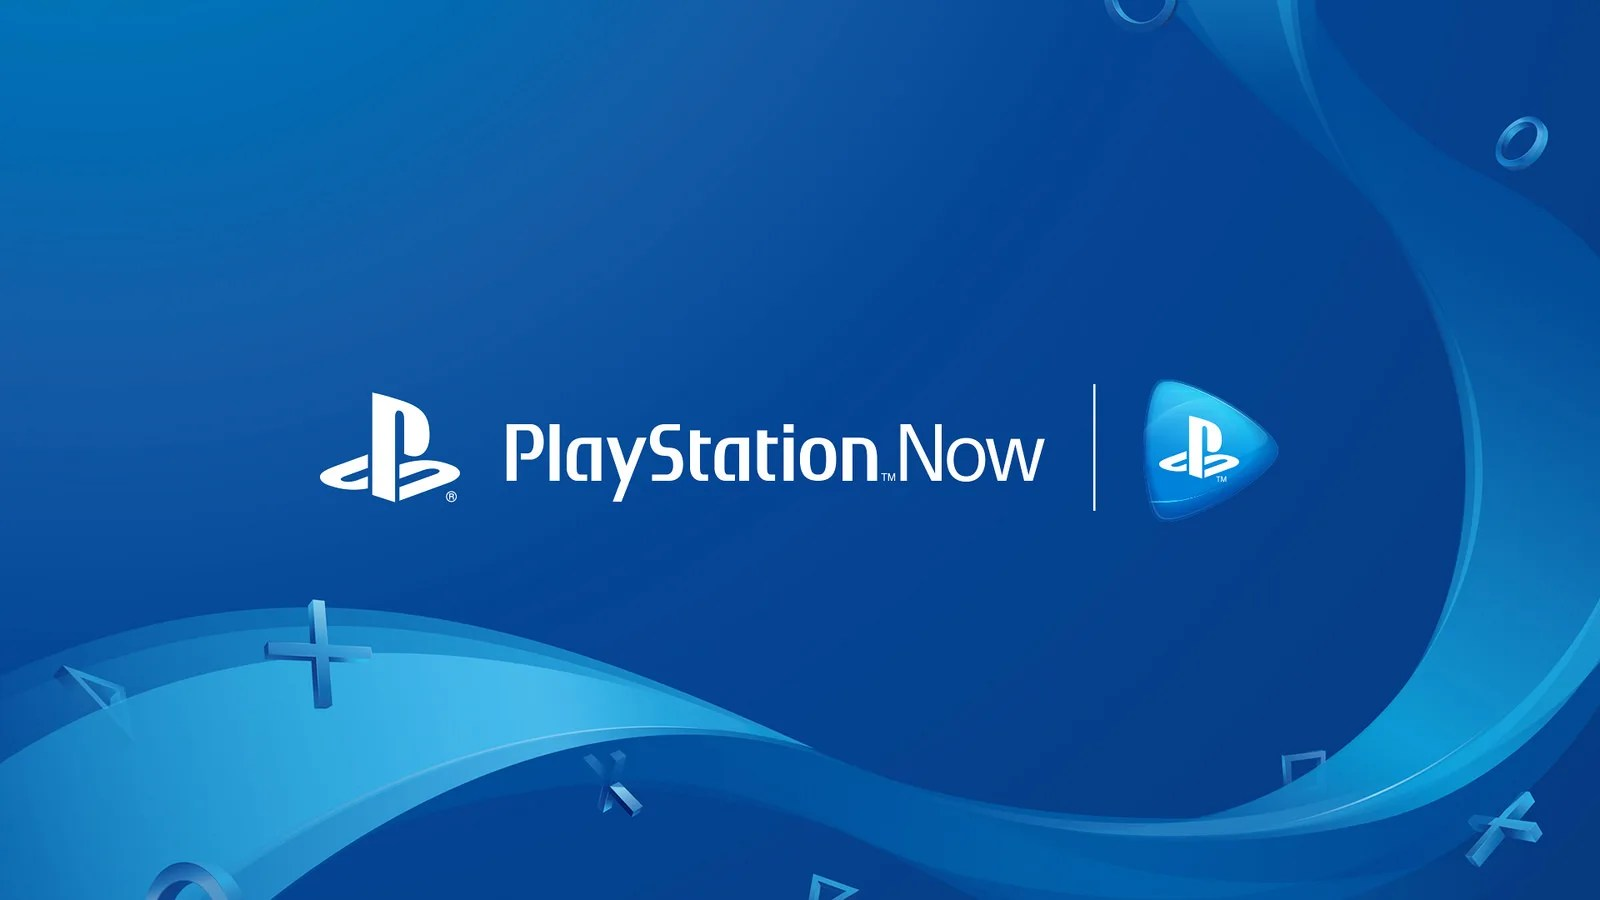 Playstation Now Stream Ps4 Games In 2017 Playstation Blog